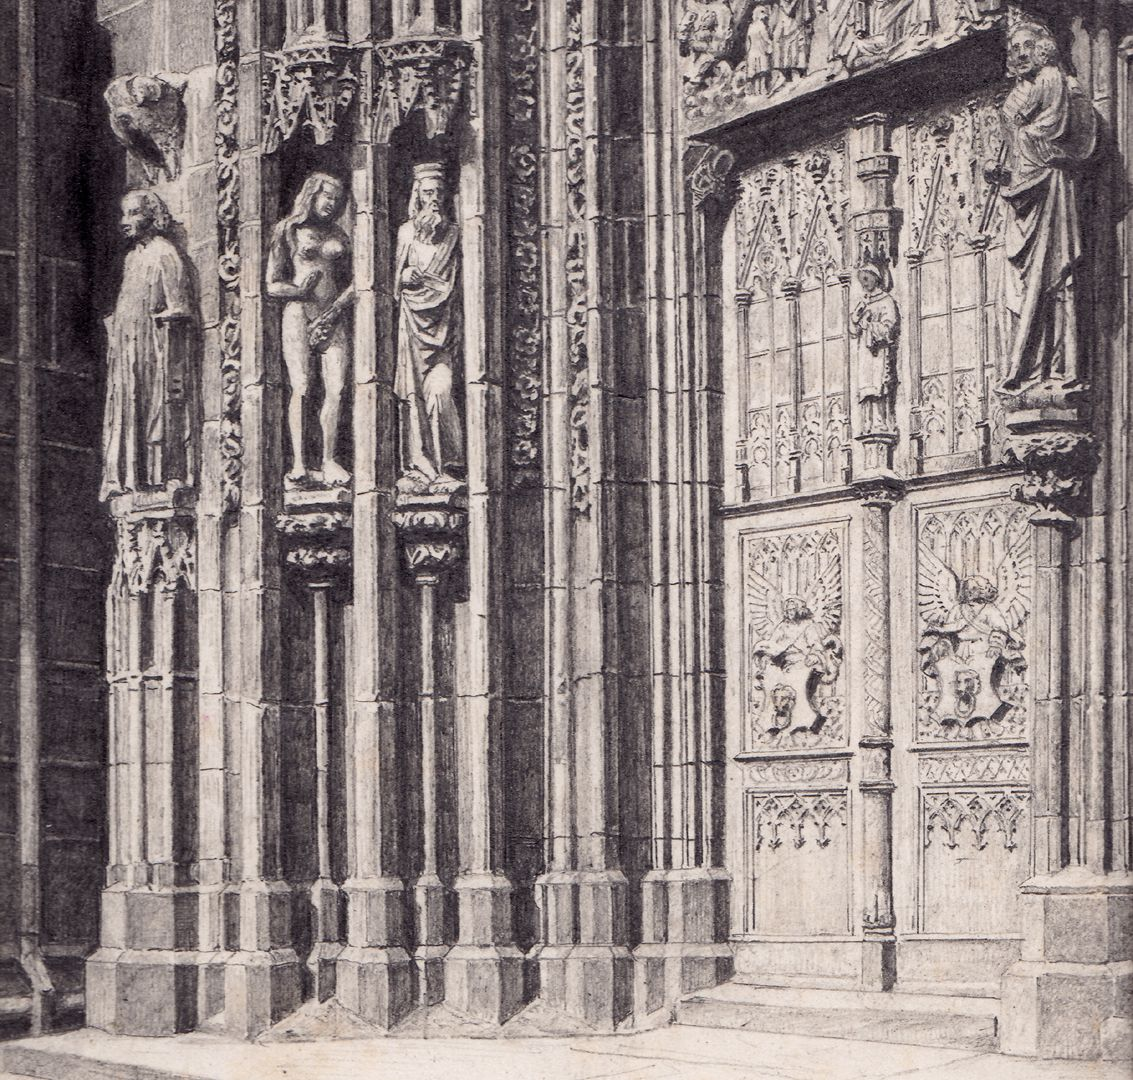 North door of the main portal of St. Lorenz Church Detail